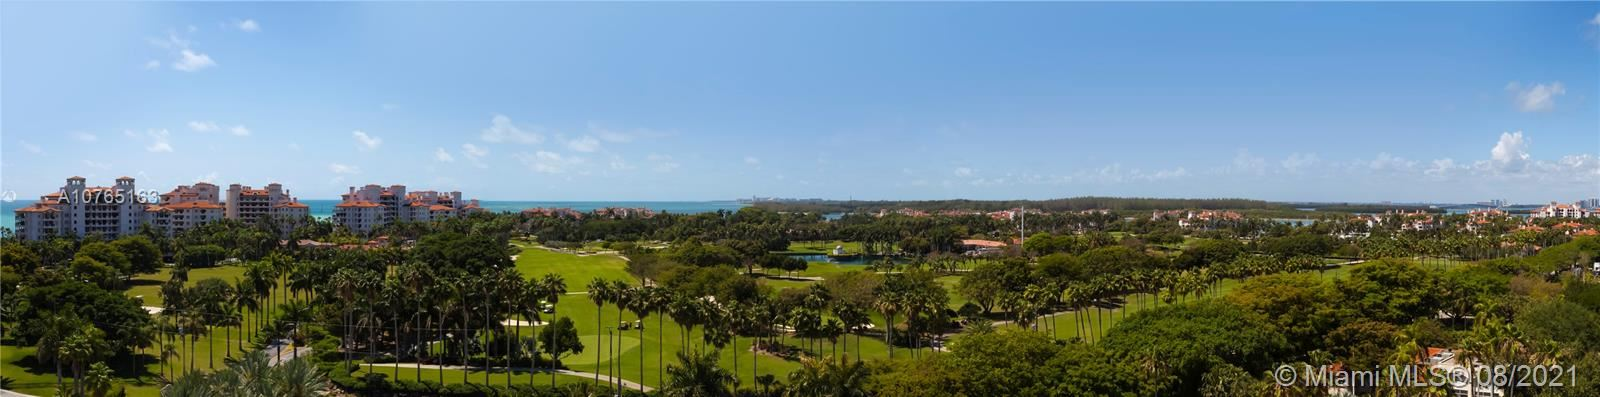 Photo of 6800 Fisher Island Drive #6842, Fisher Island, FL 33109 (MLS # A10765163)